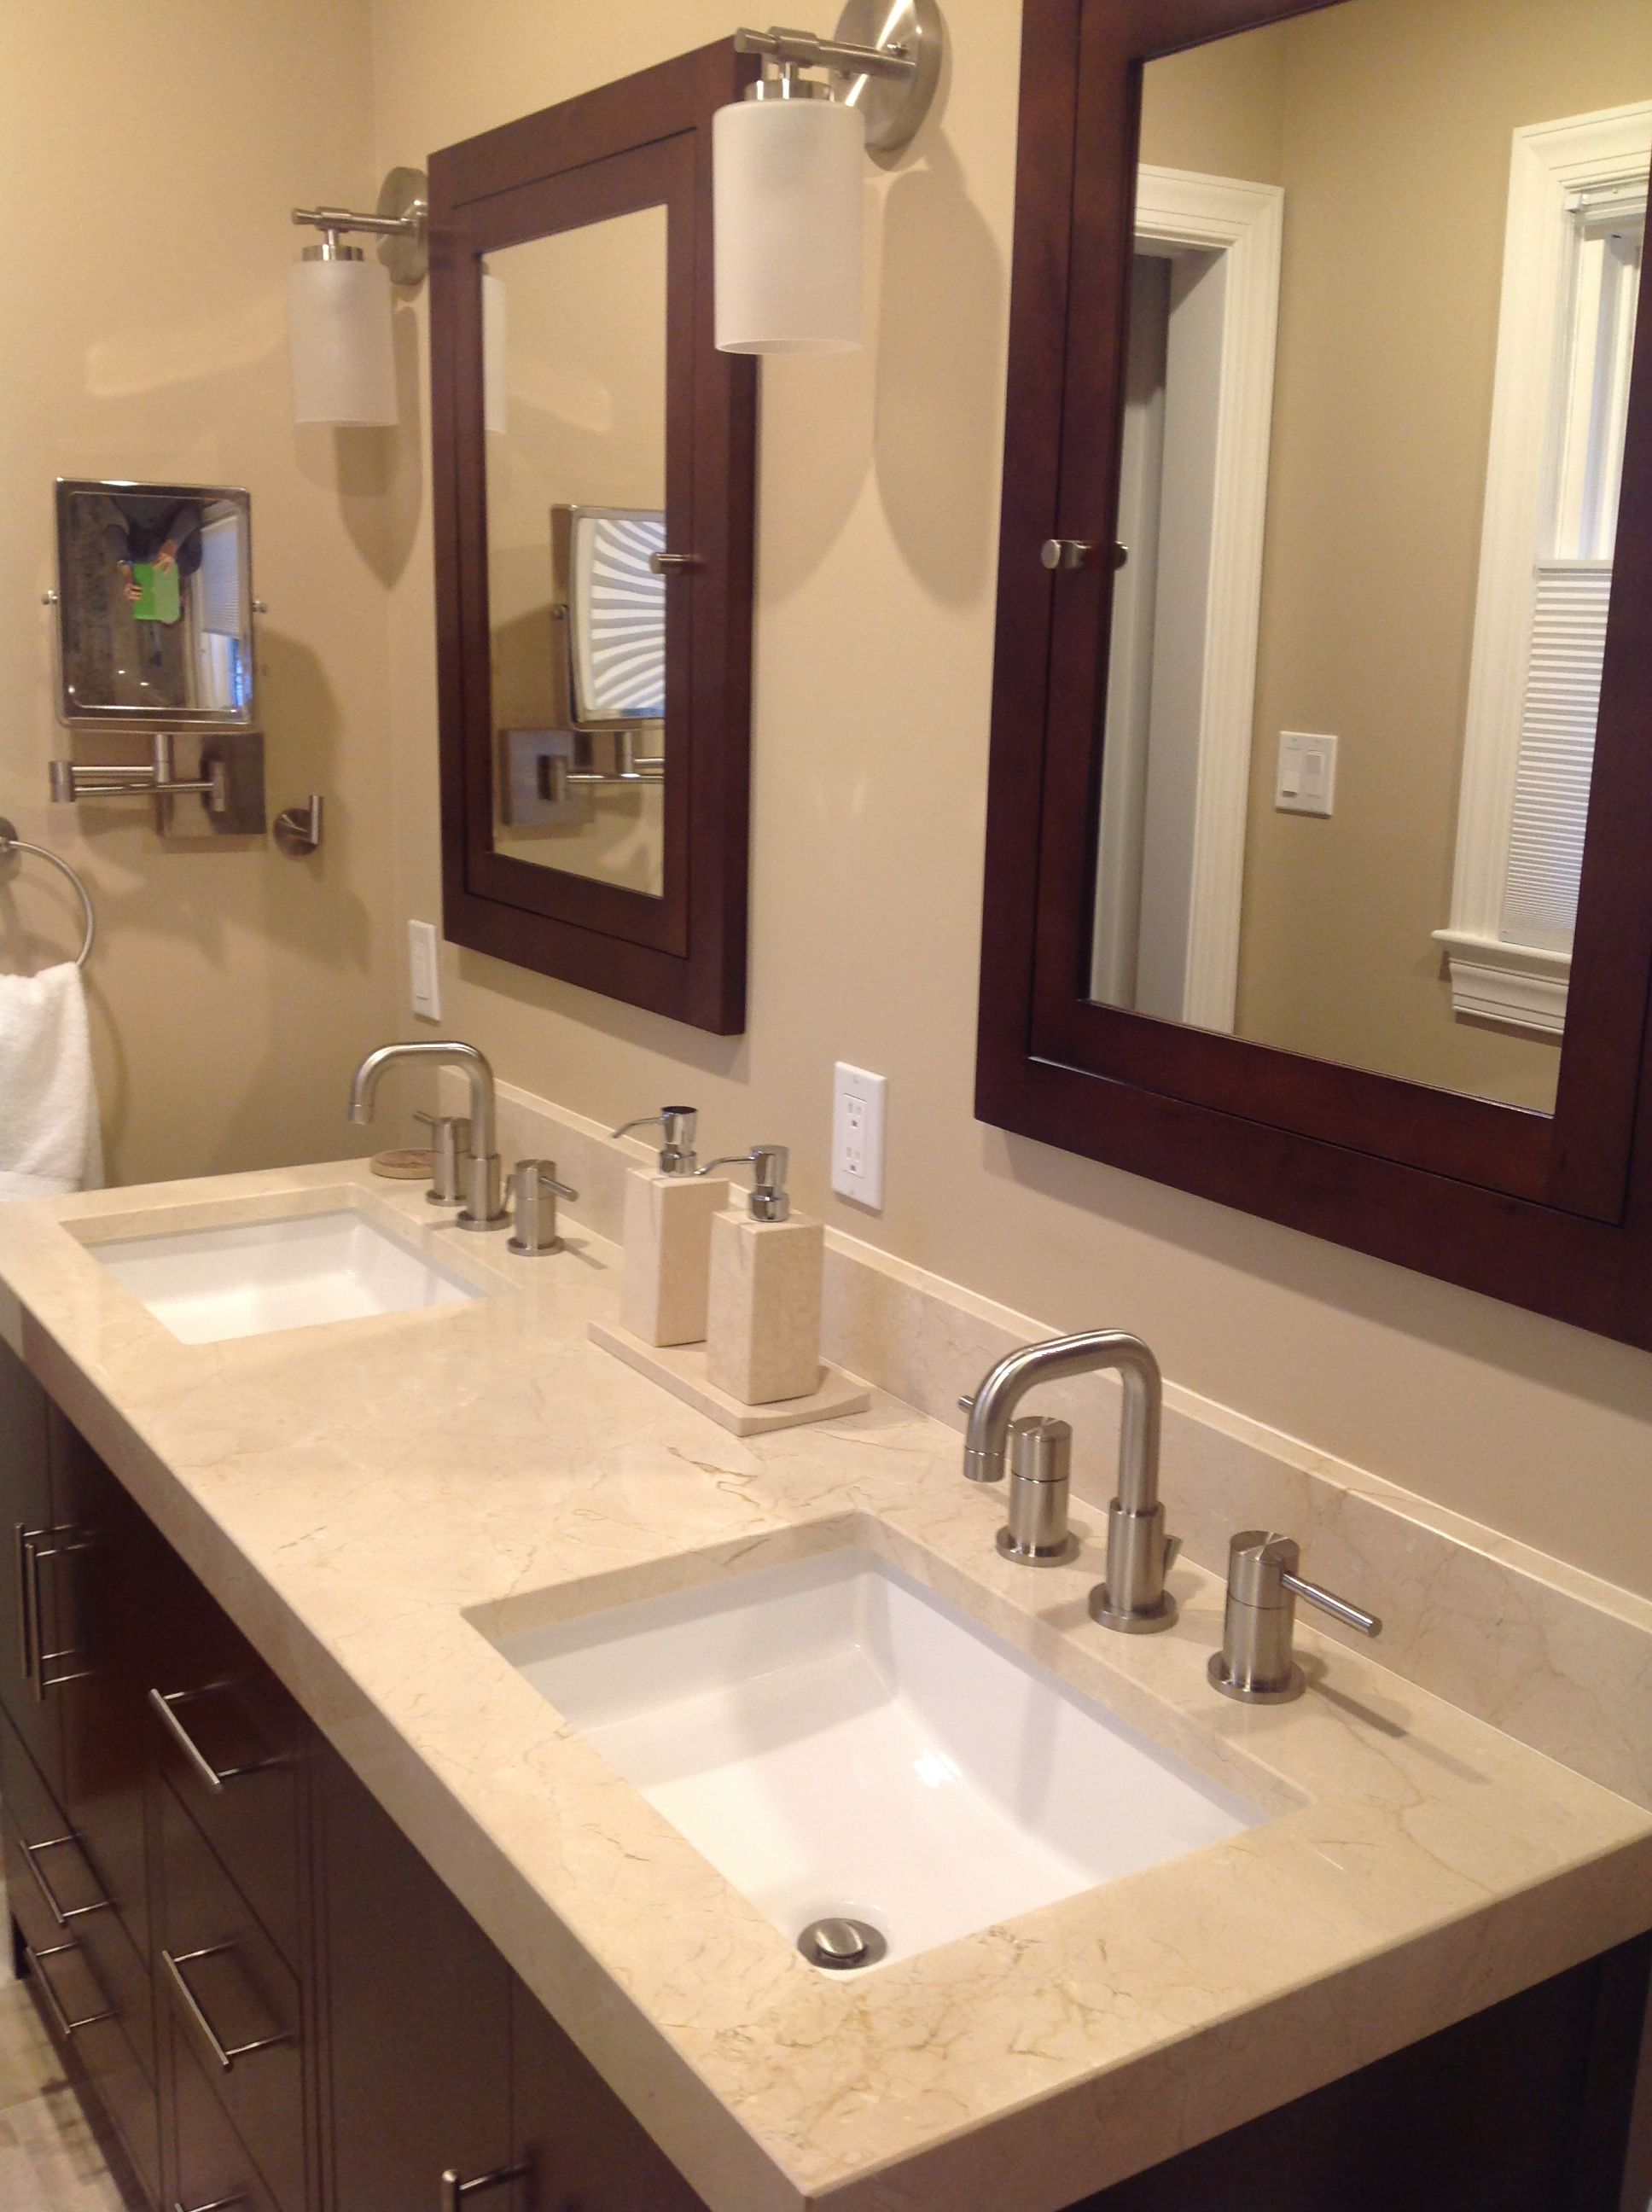 Recessed Medicine Cabinets And Rectangular Undermount Sinks Want